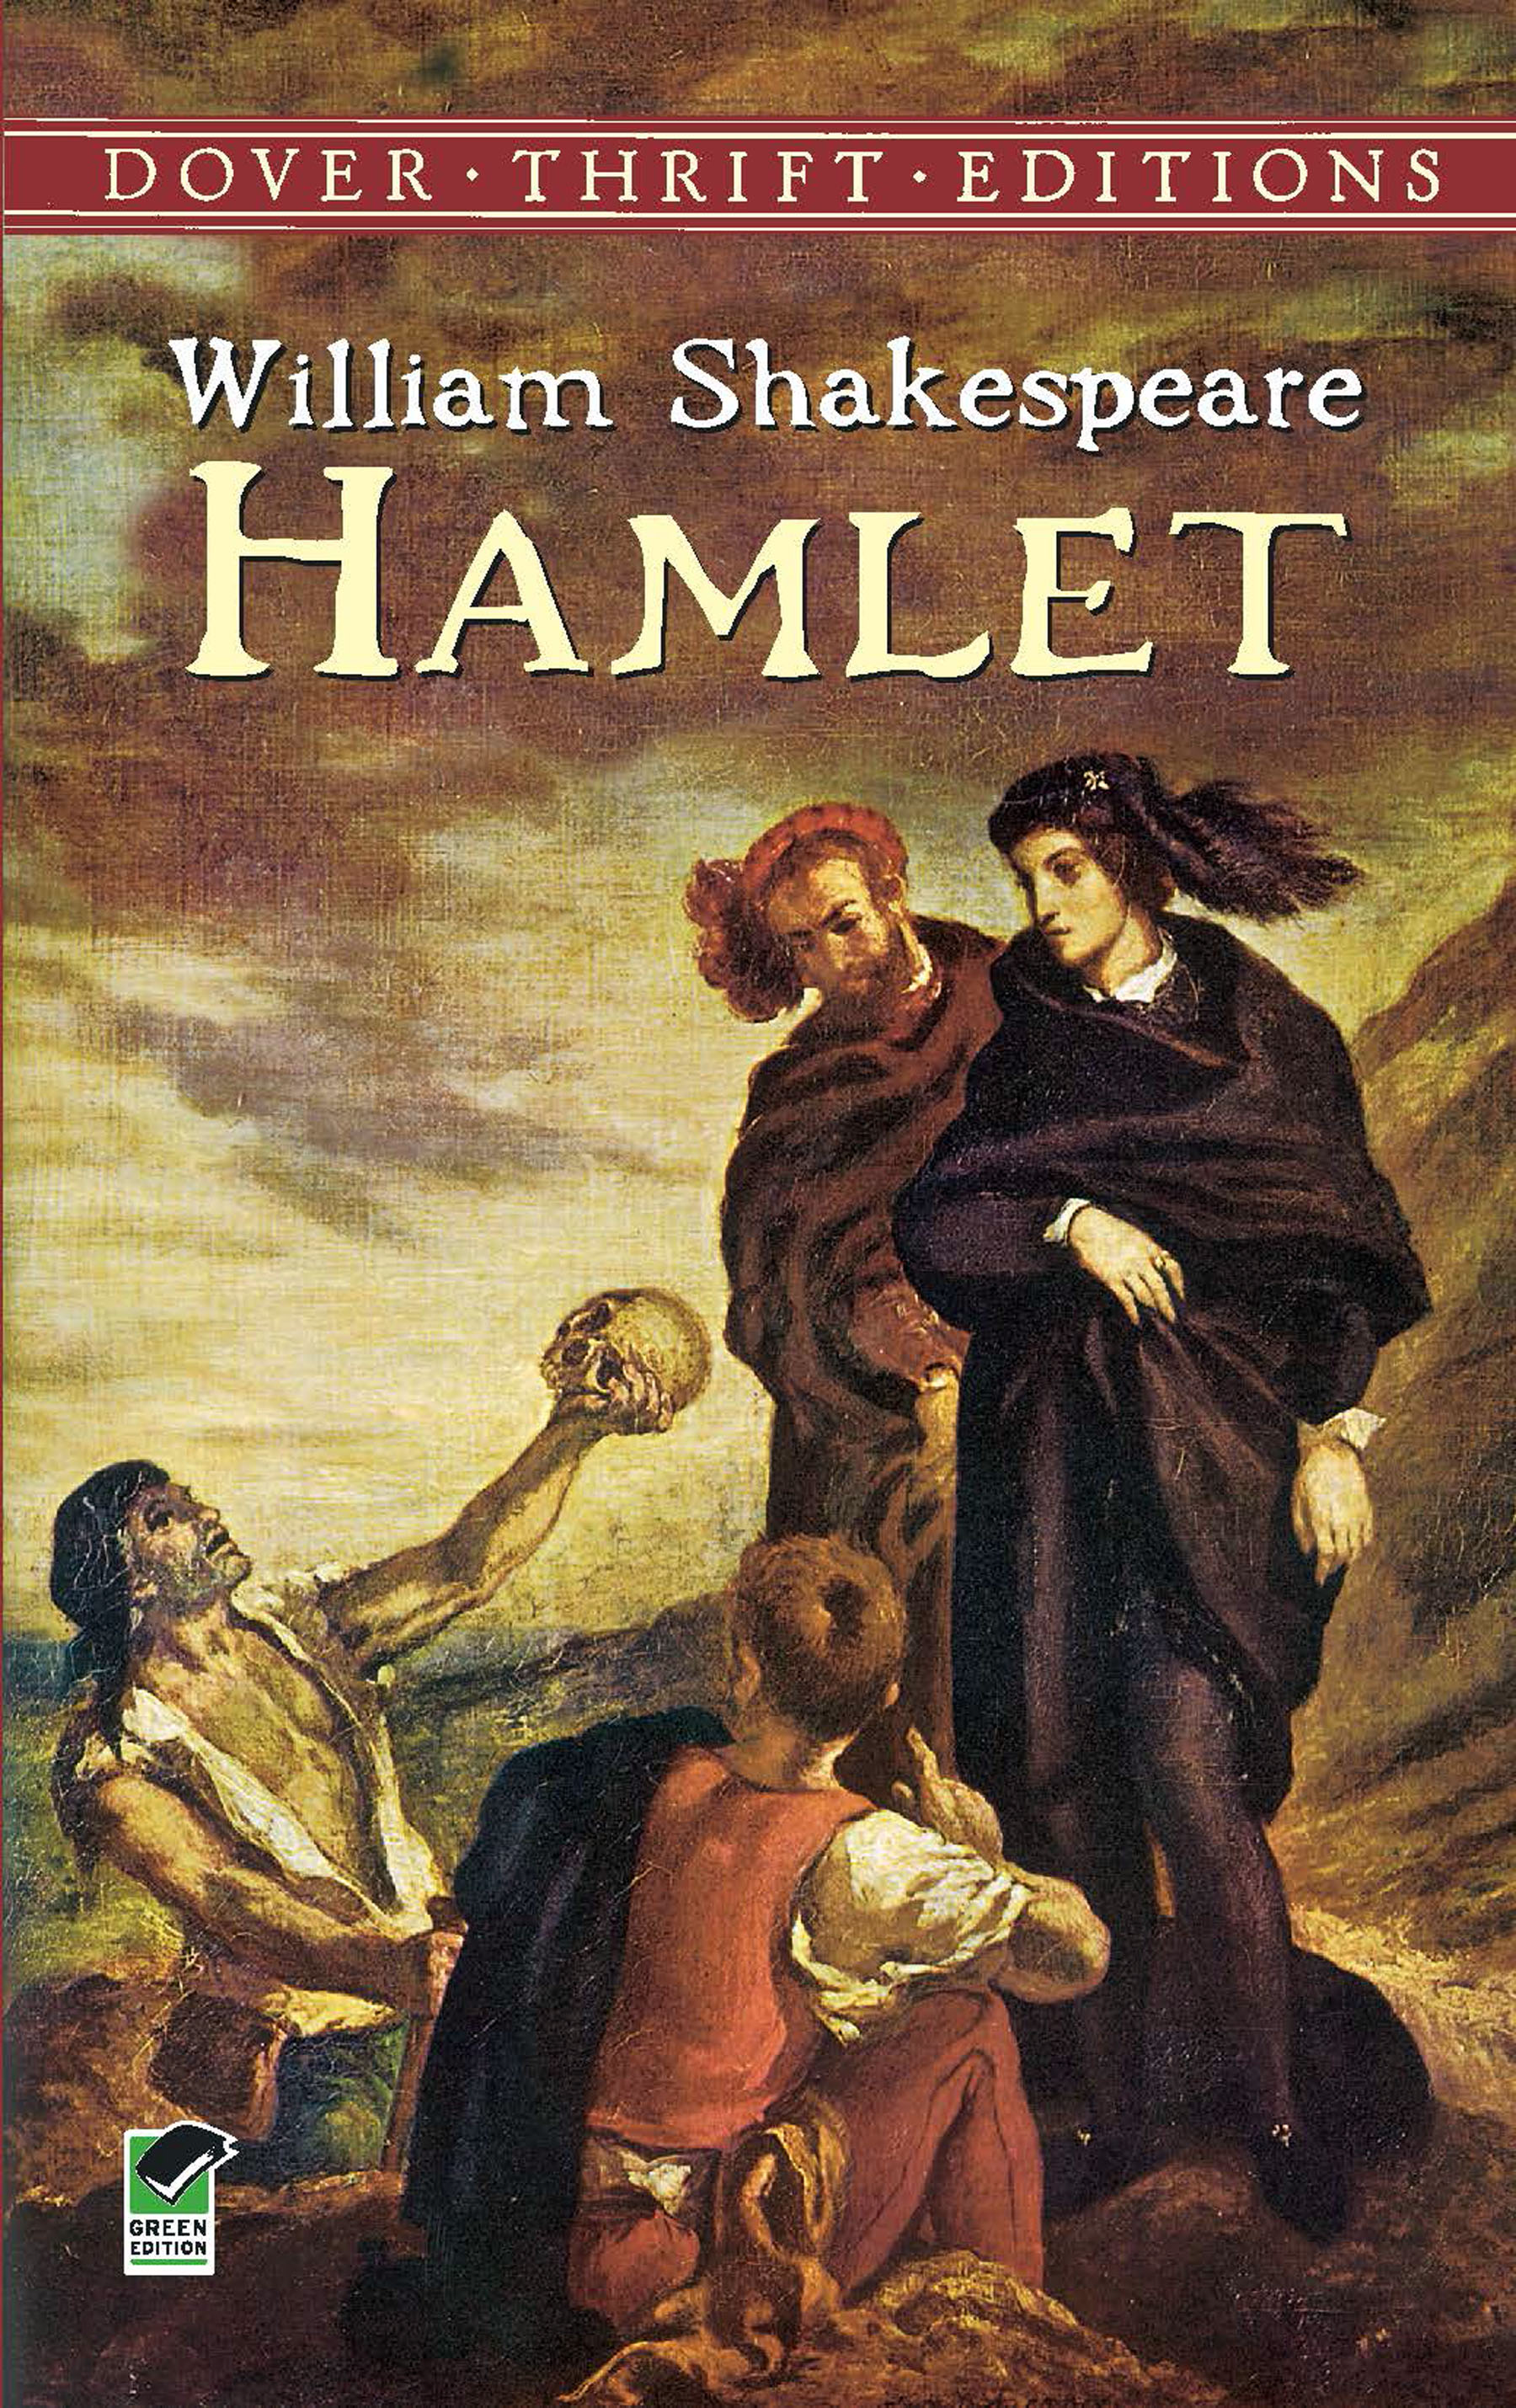 in hamlet and macbeth essay topics supernatural in hamlet and macbeth essay topics